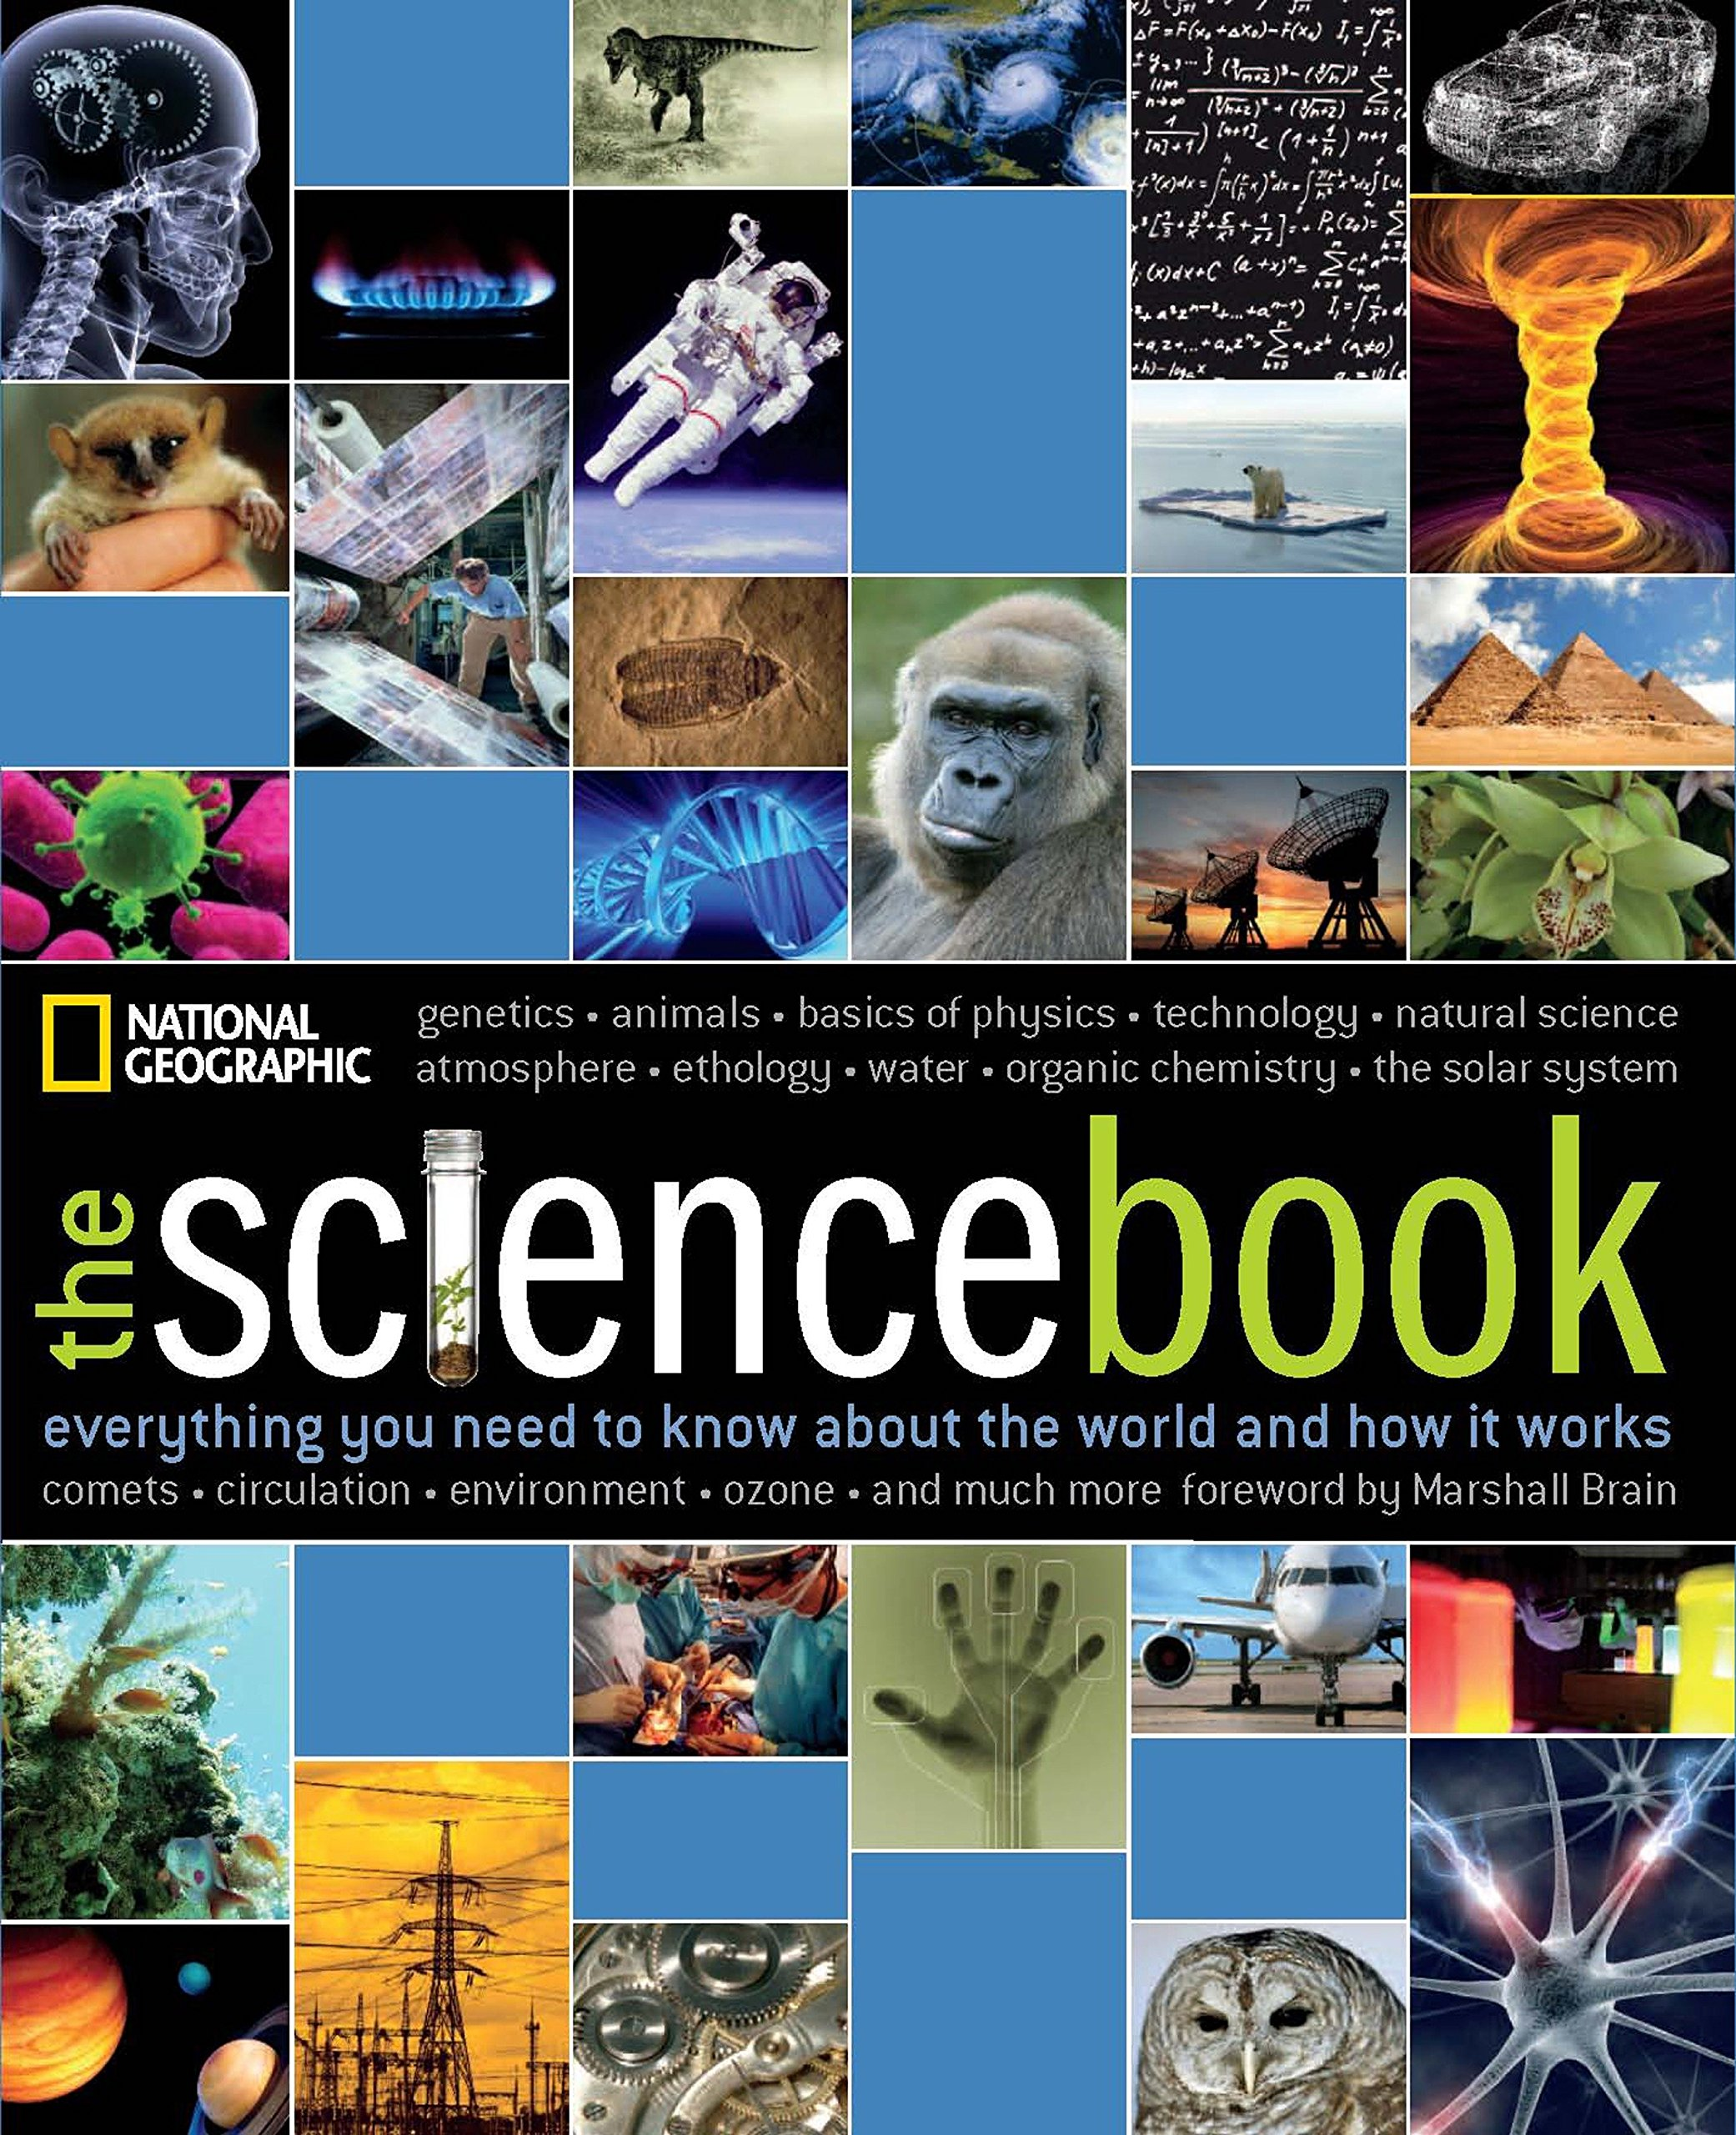 20 scientific series about everything